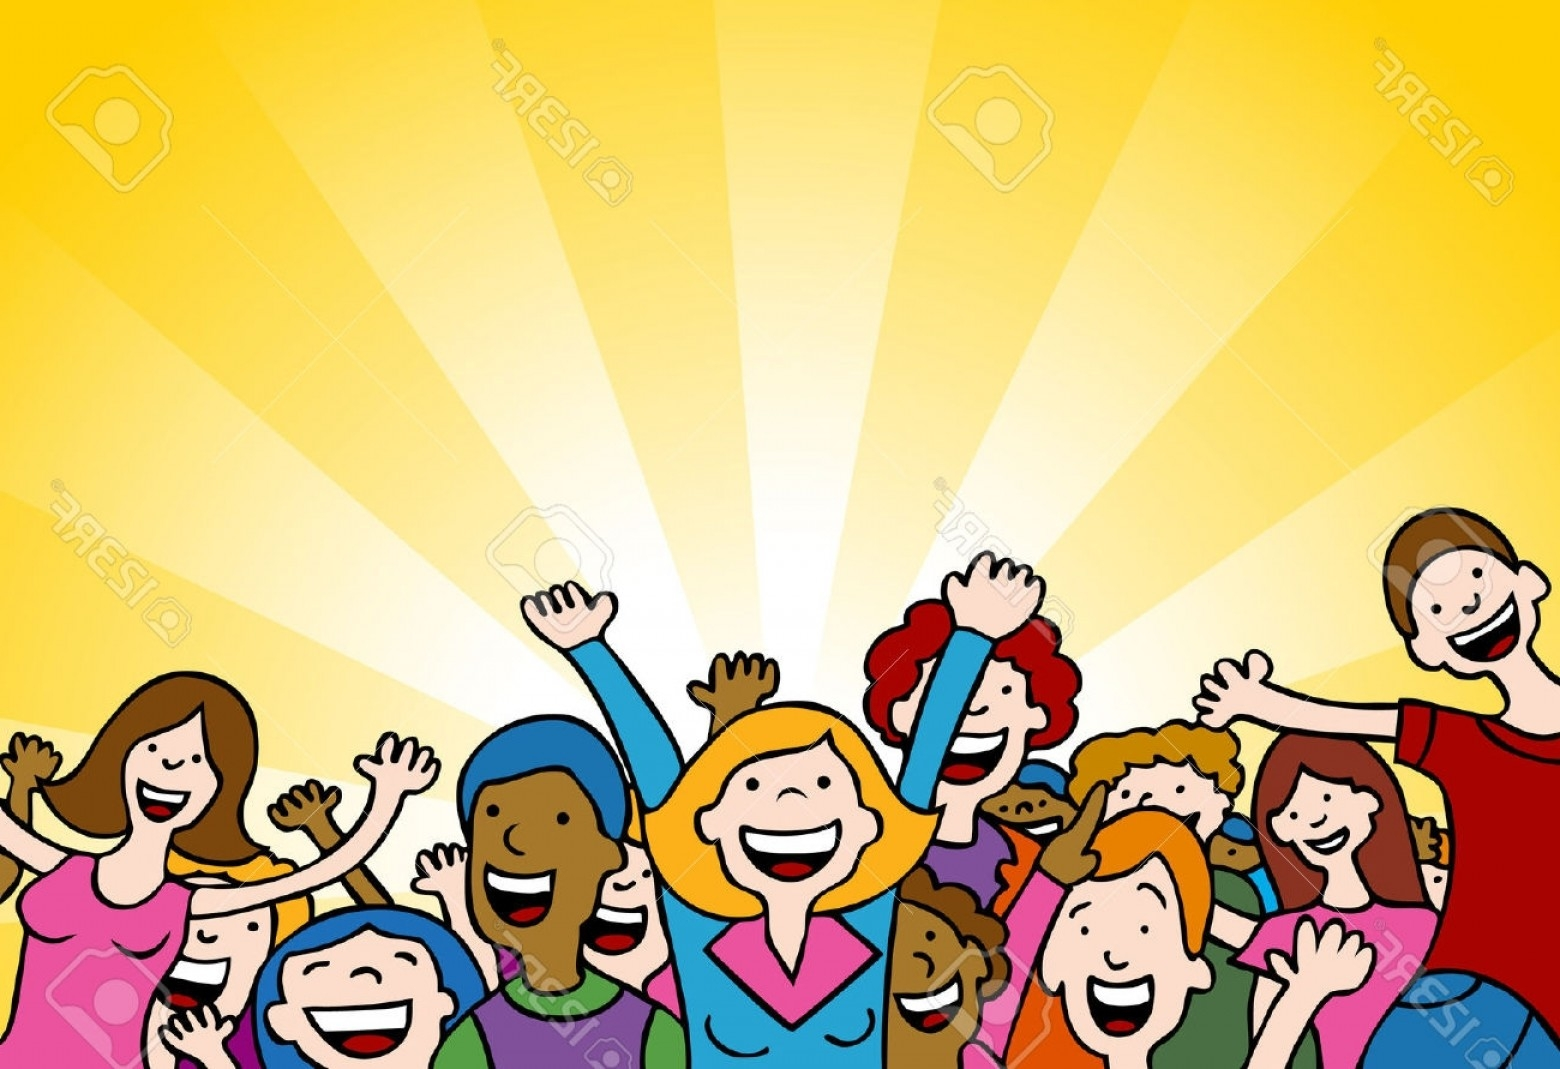 clip library library Free download best on. Applause clipart crowd person.